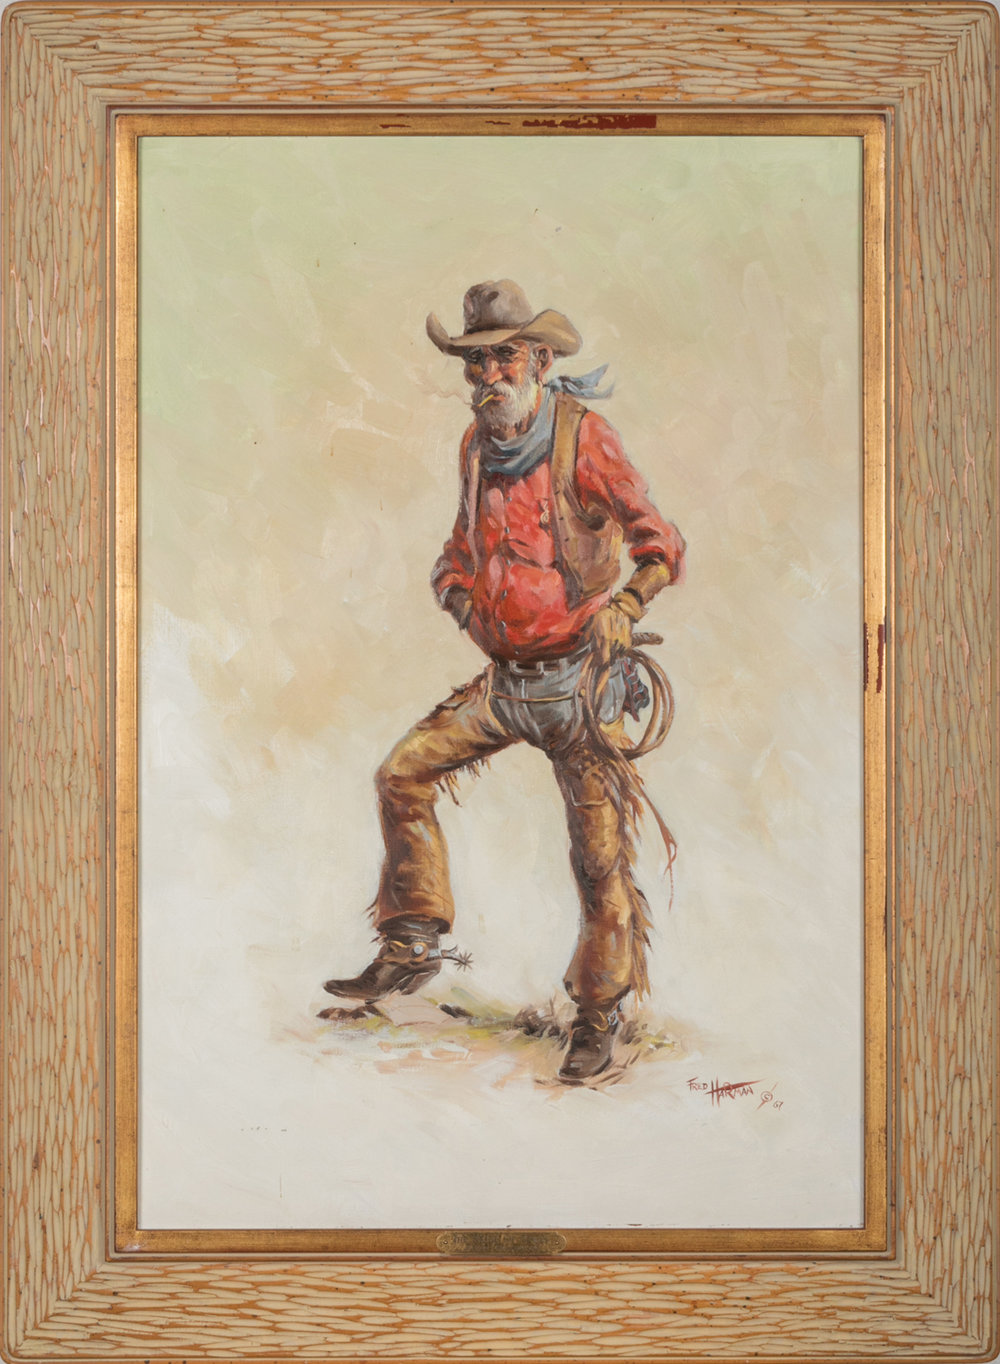 "Lot 169, Fred Harman, The Pride of Texas, Oil on canvas, 24"" x 36"".  Literature: The Cowboy in Art, by Ed Ainsworth, pictured on page 132. Book included. The Great West in Paintings,  by Fred Harman, 1969, pictured on page 140. Fred Harman. Provenance: From the Estate of Snuff Garrett. Est. $2,000-3,000."